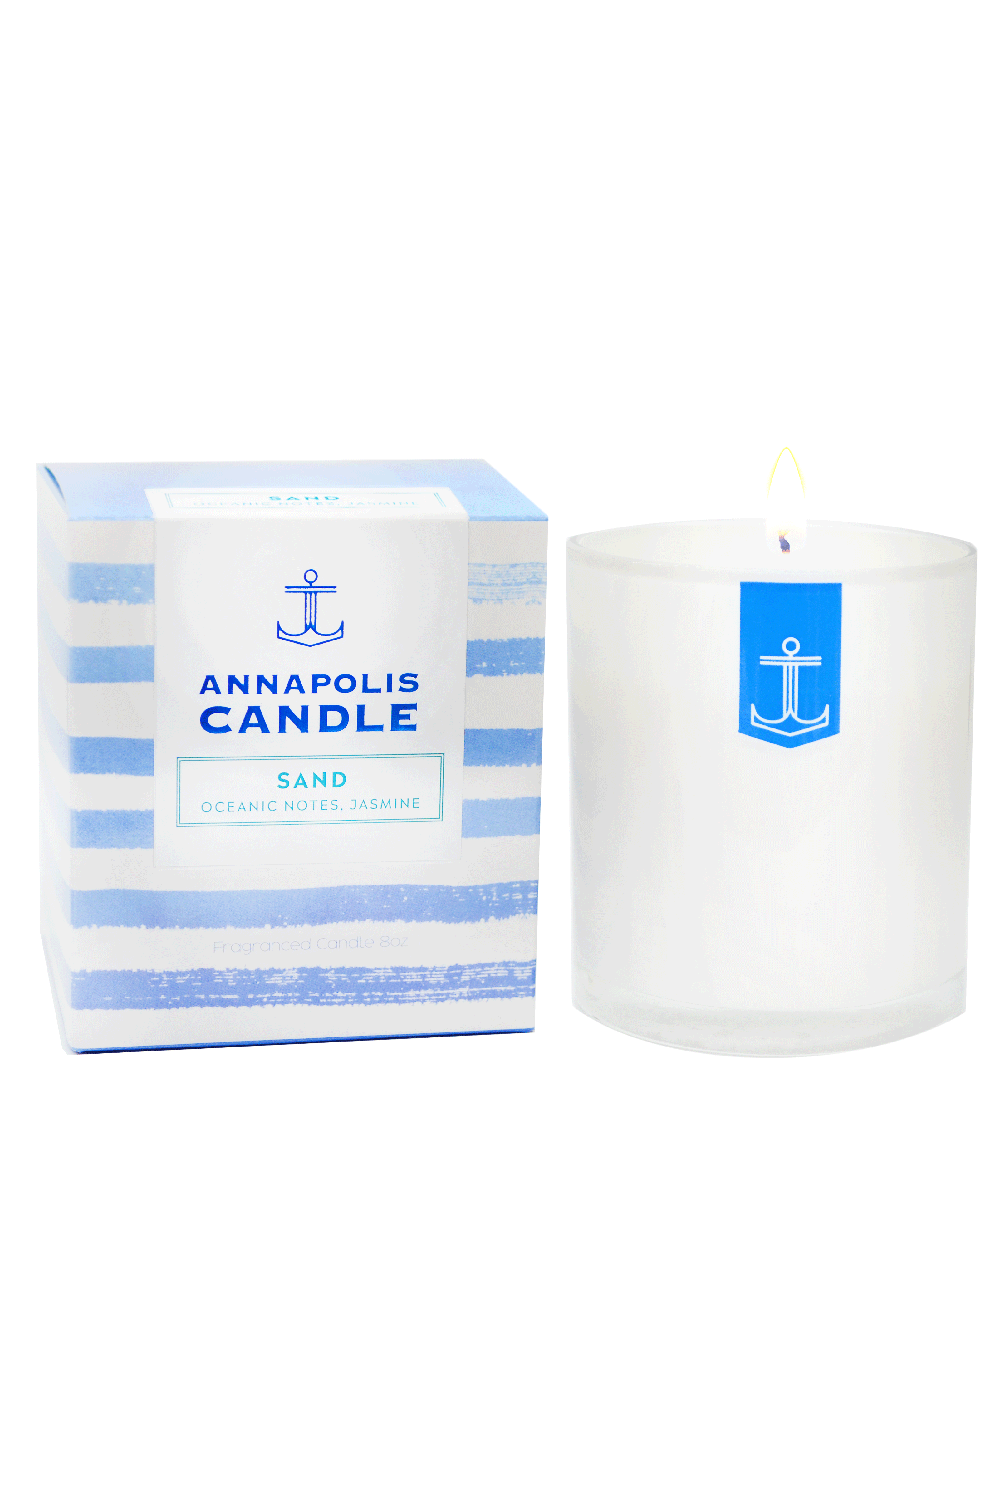 *NEW* Boxed Annapolis Candle - Sand